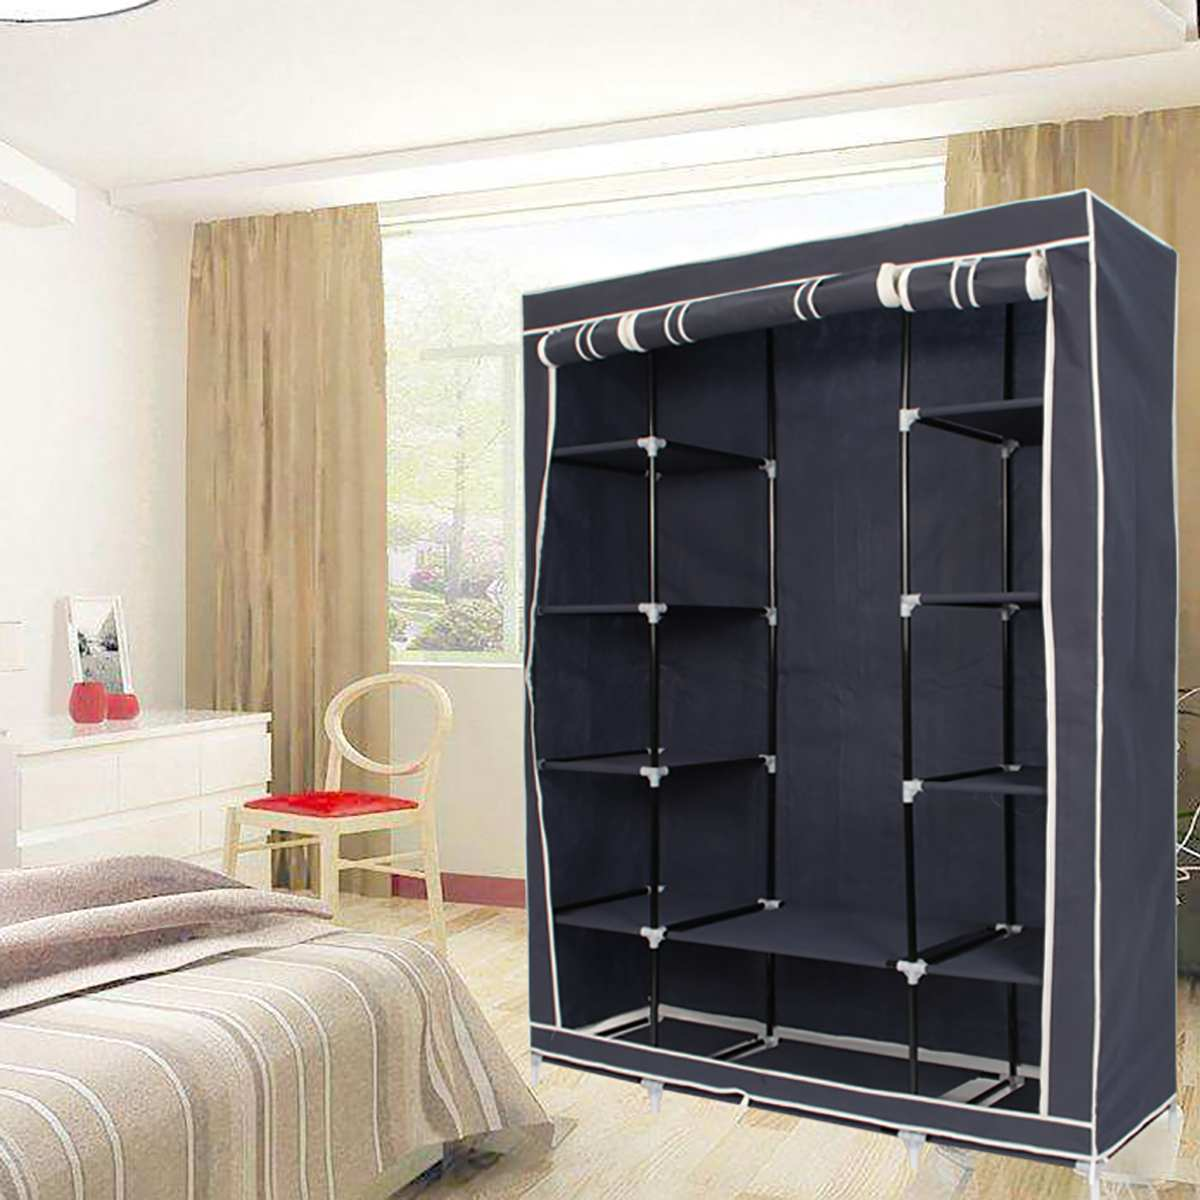 Bedroom Furniture 2019 Diy Non Woven Fold Portable Storage